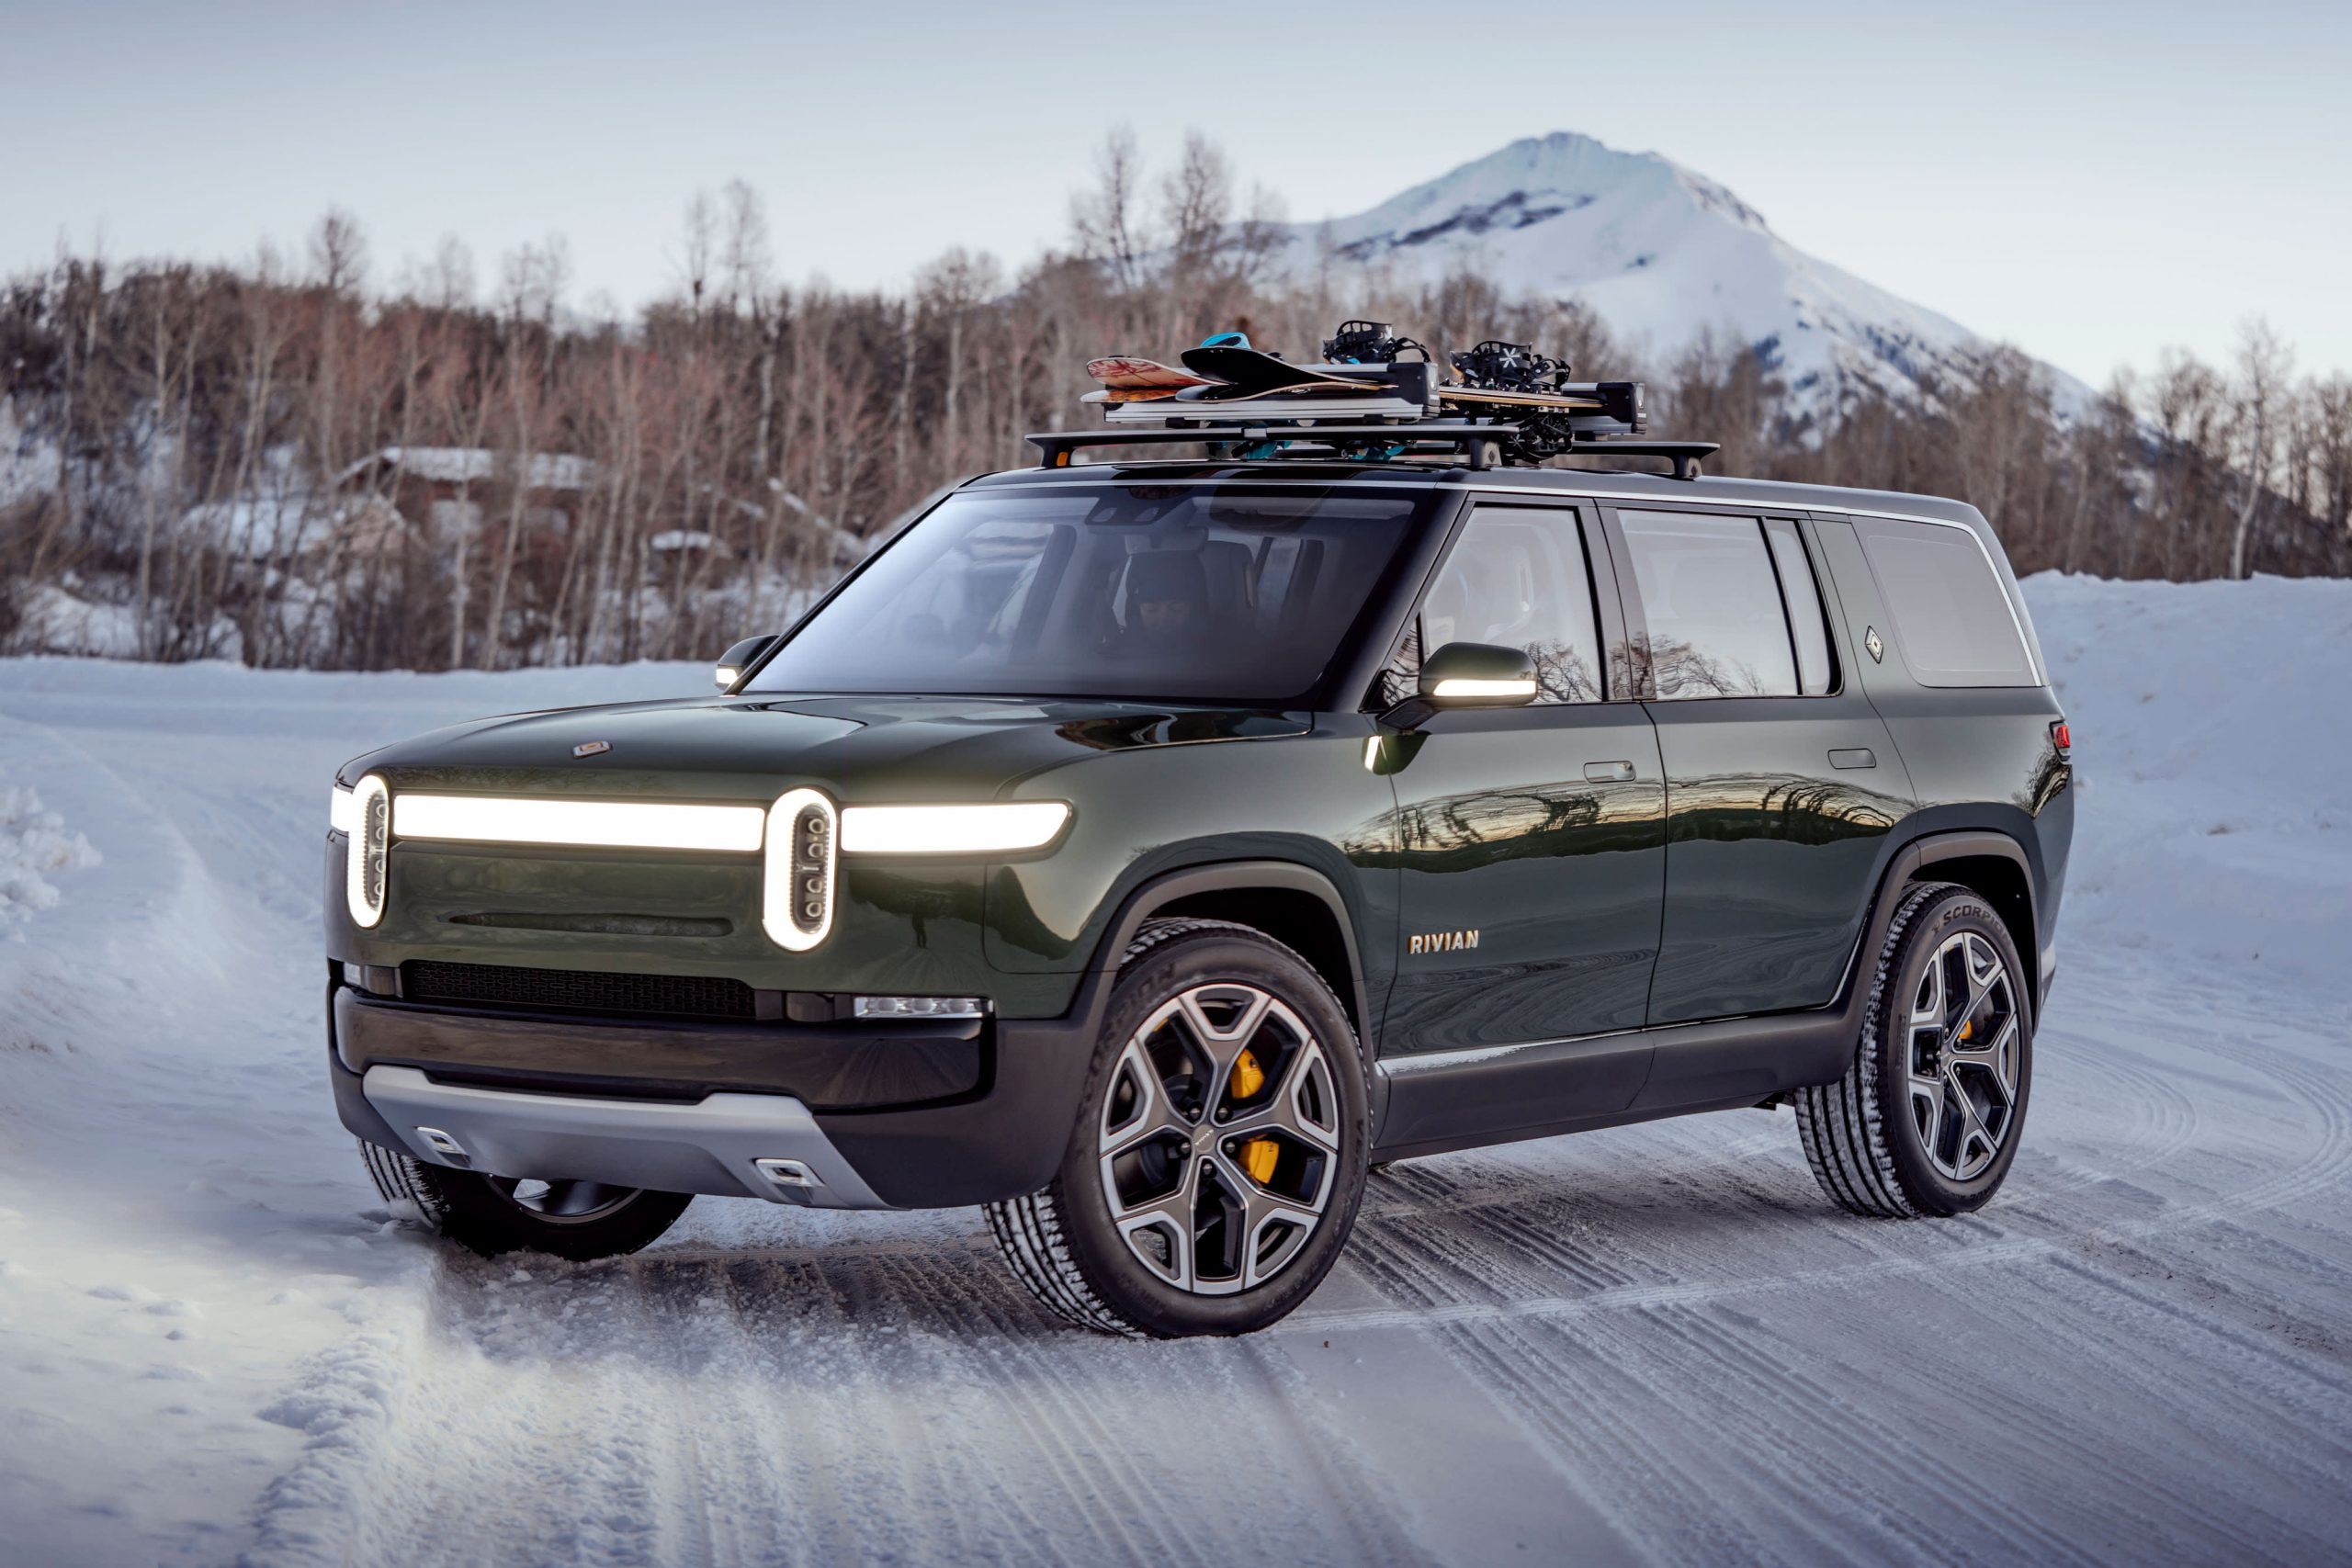 ev-start-up-rivian-raises-2-65-billion-in-new-funding-round-led-by-t-rowe-price